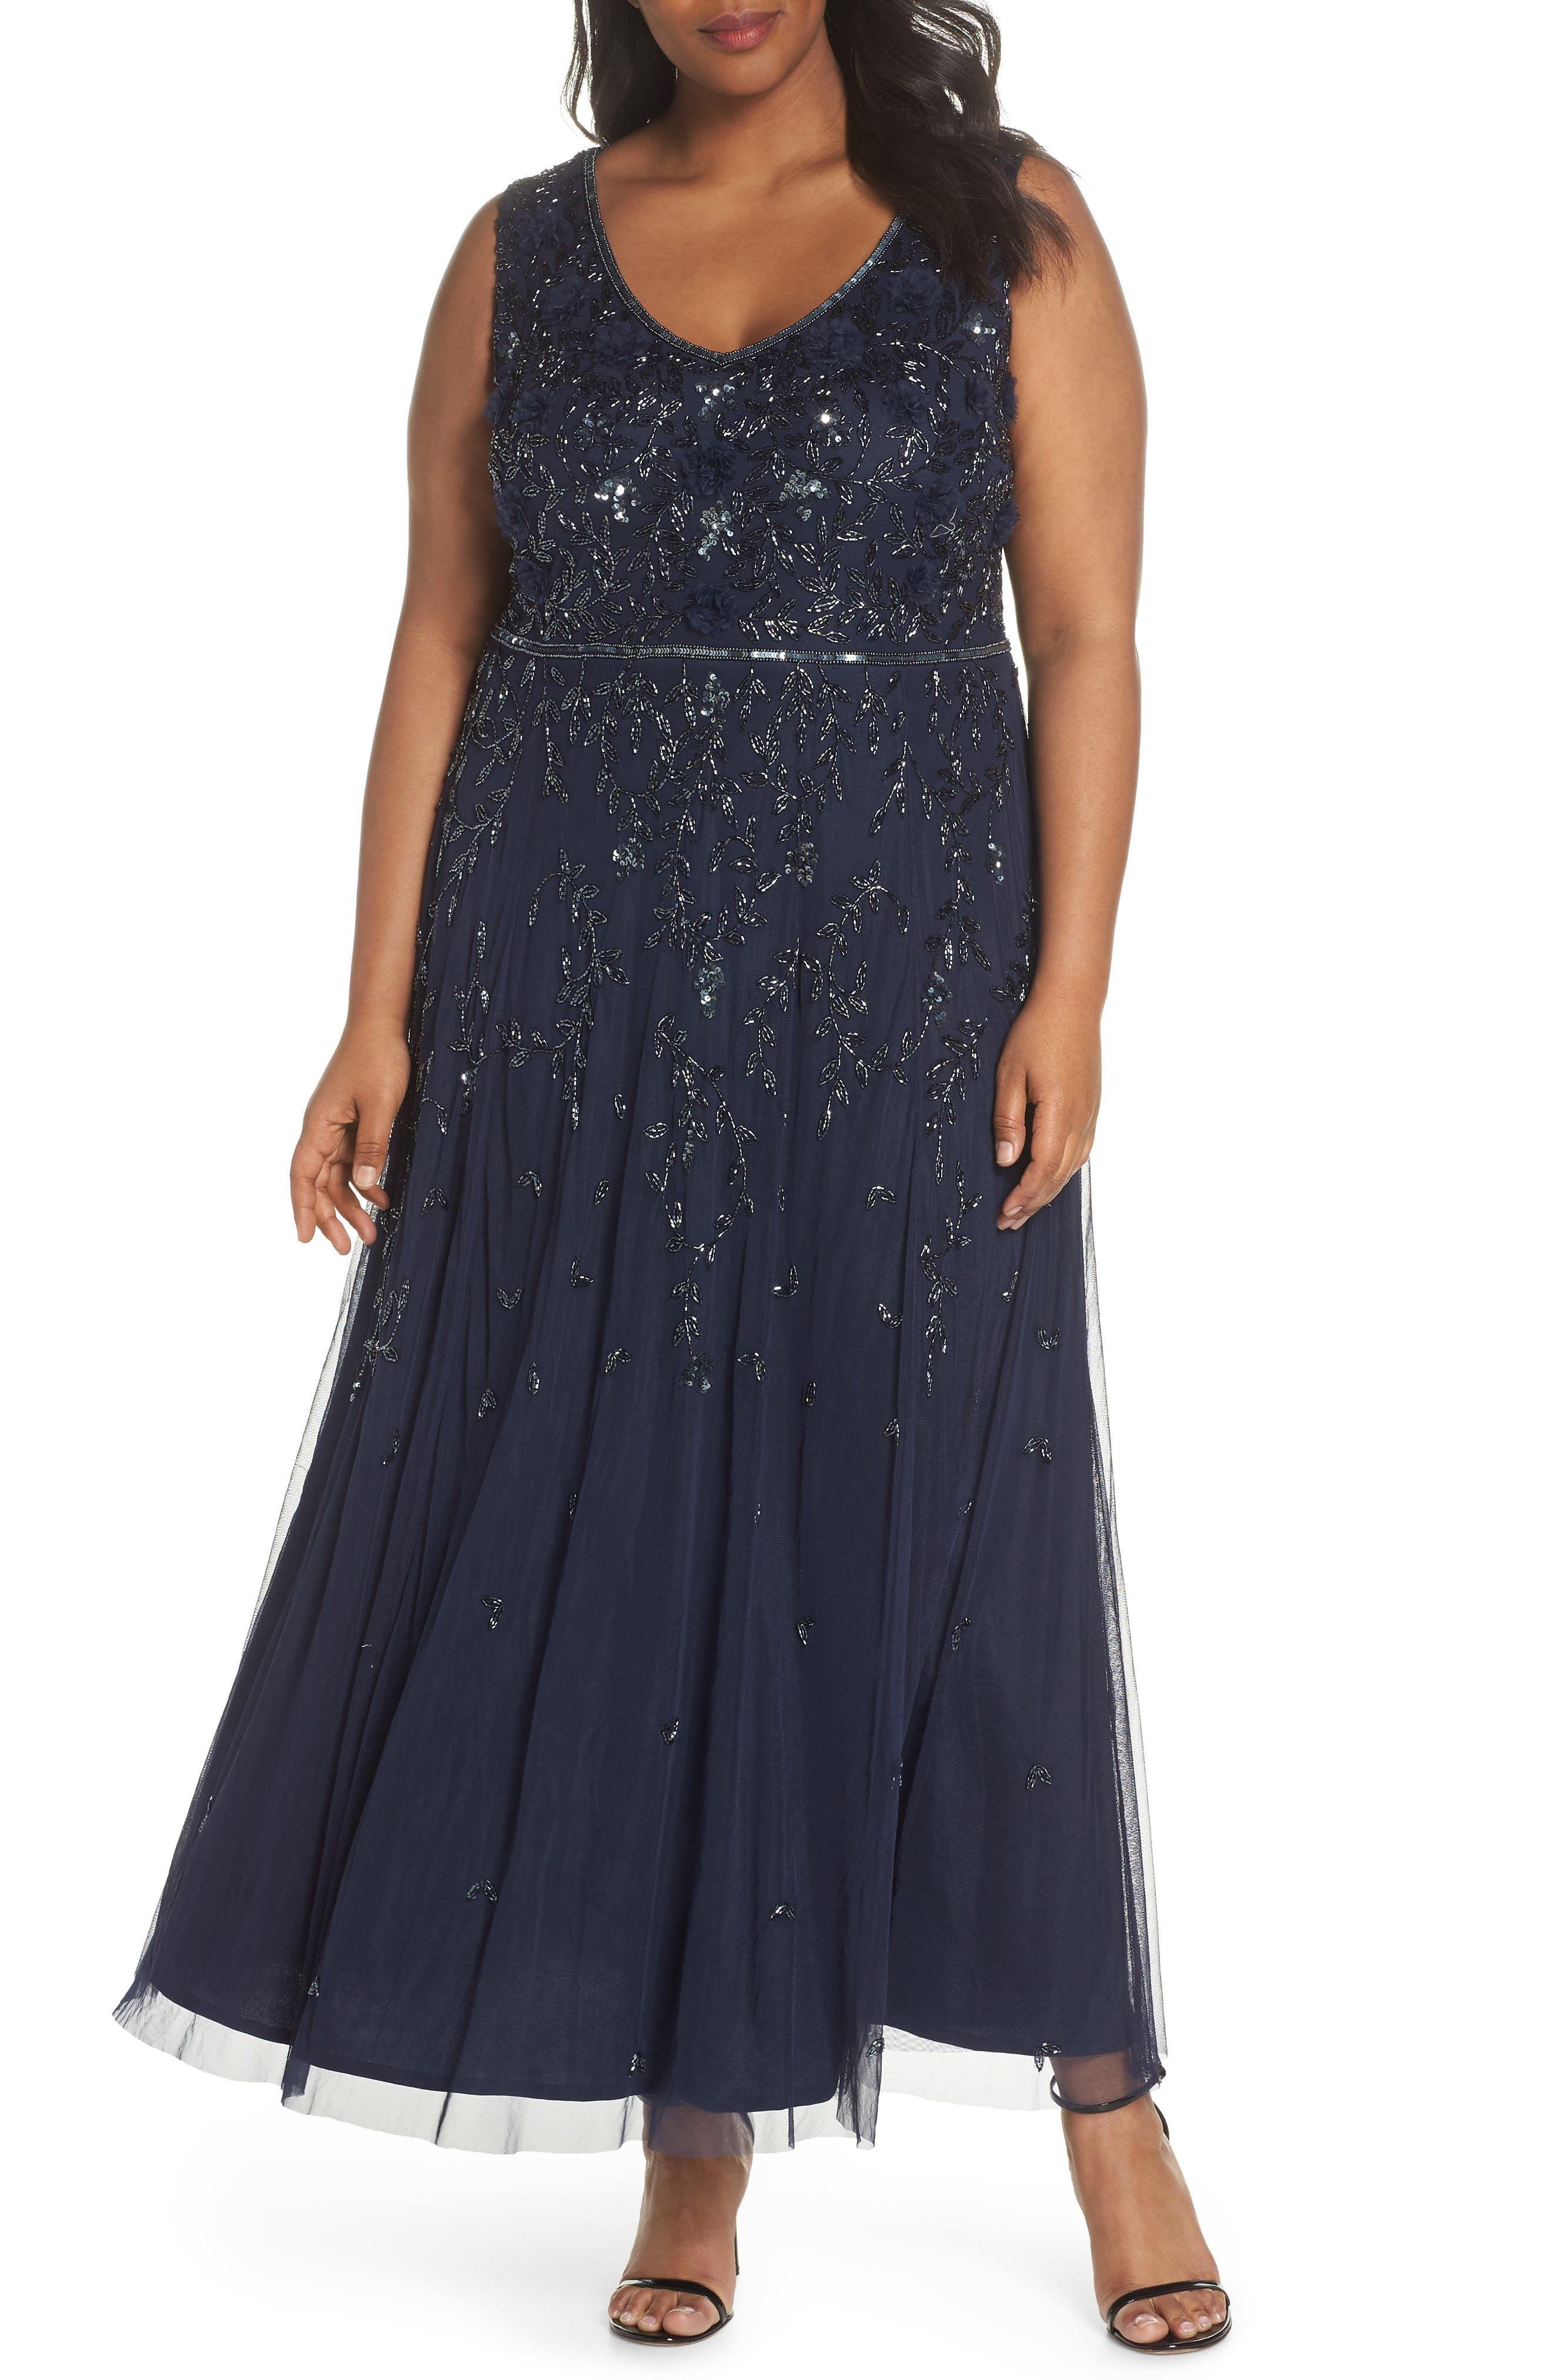 3D Embellished Mesh A-Line Gown,                         Main,                         color, Navy